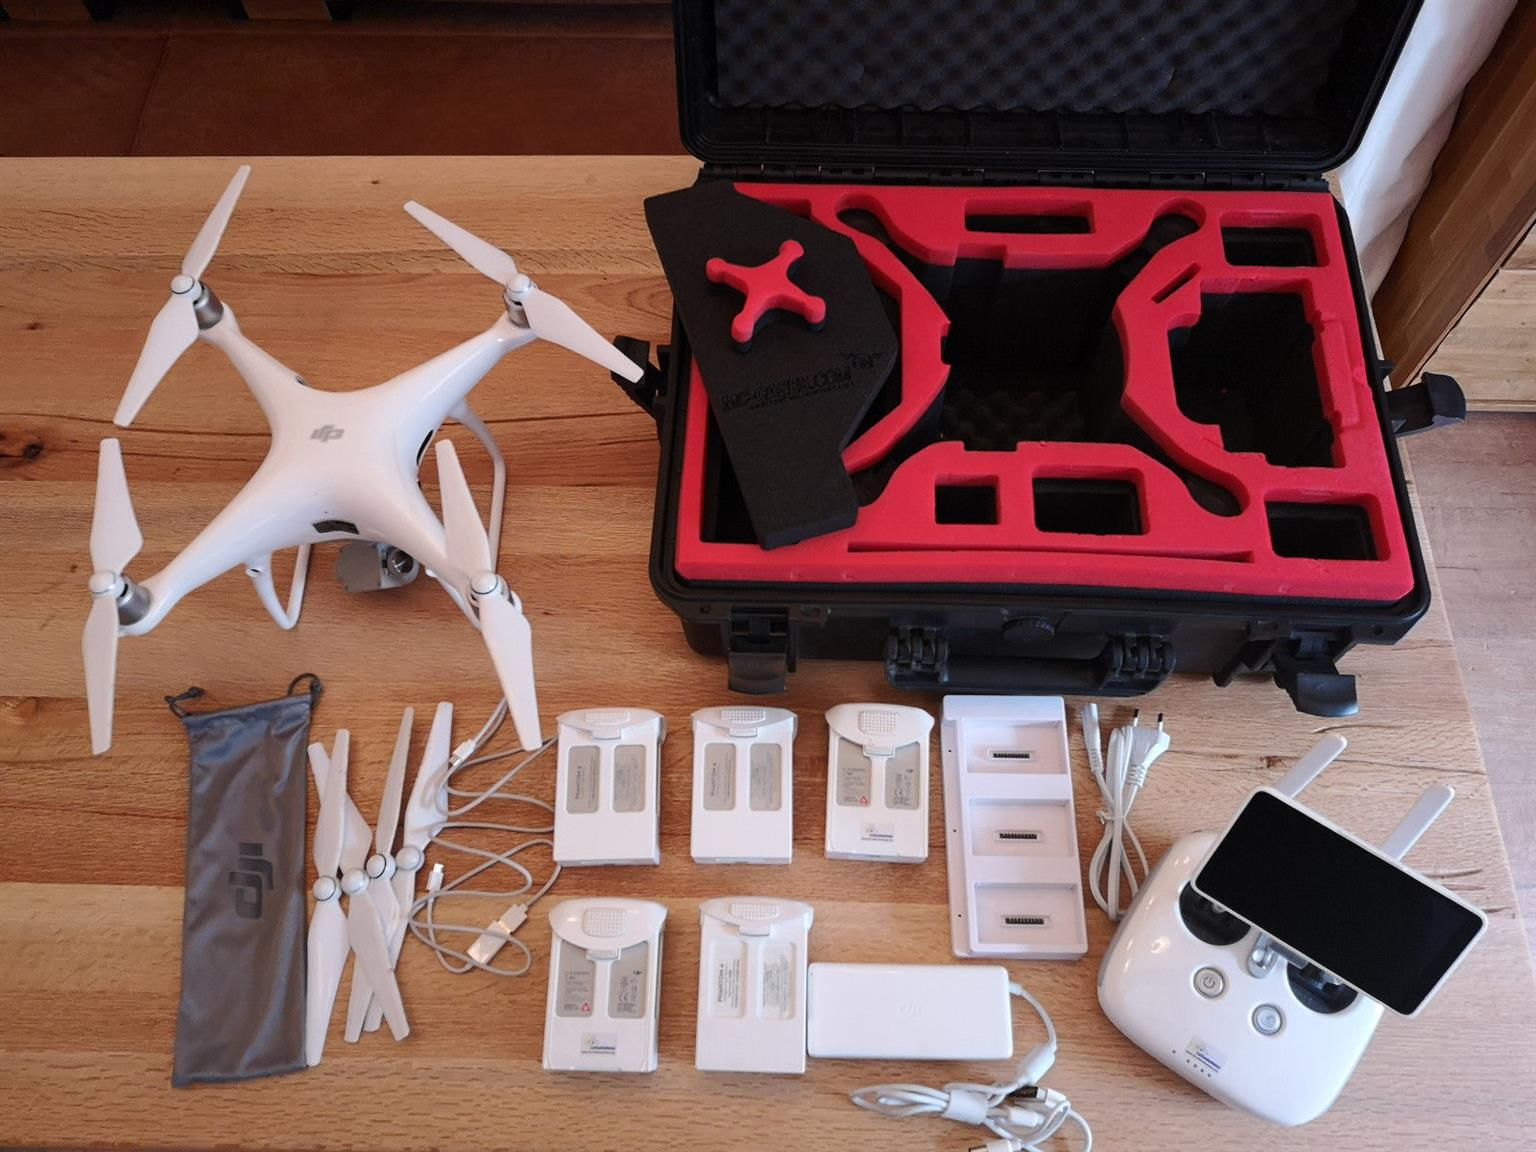 DJI Phantom 4 Pro Plus Drone - Excellent Condition - 4 batteries and accessories